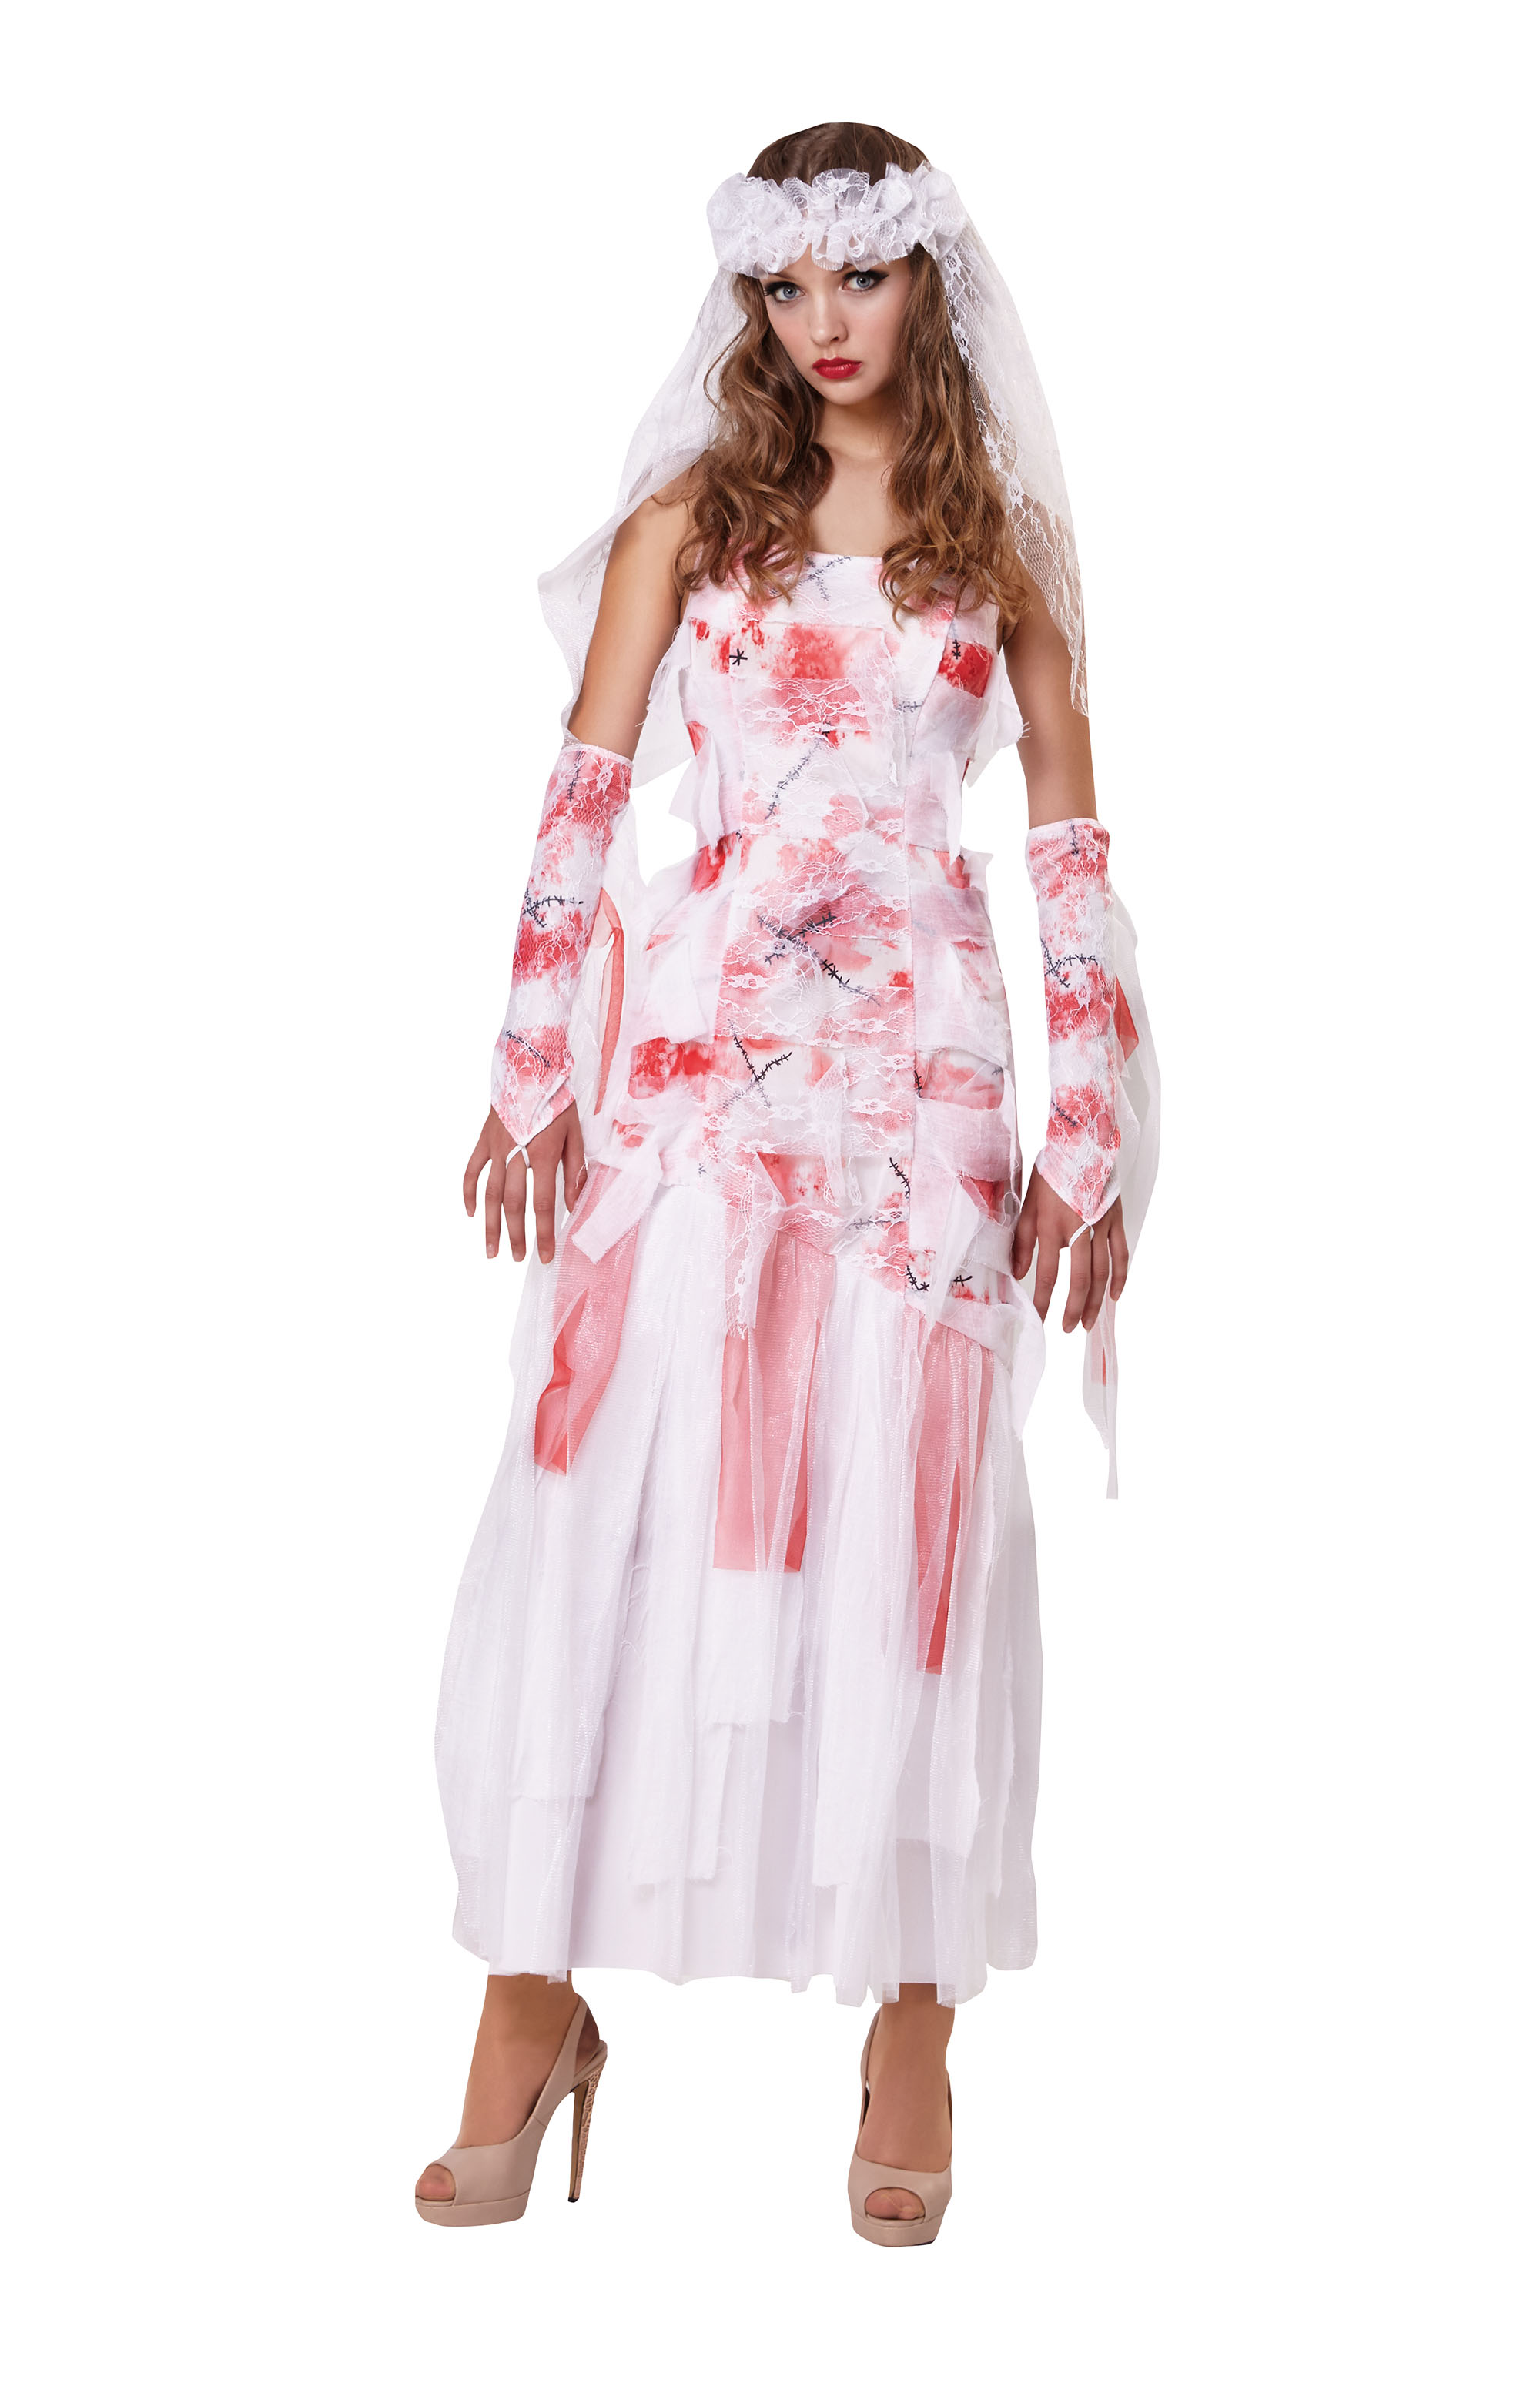 Grave Bride Fancy Dress Costume Outfit Womens Adult UK 10-12